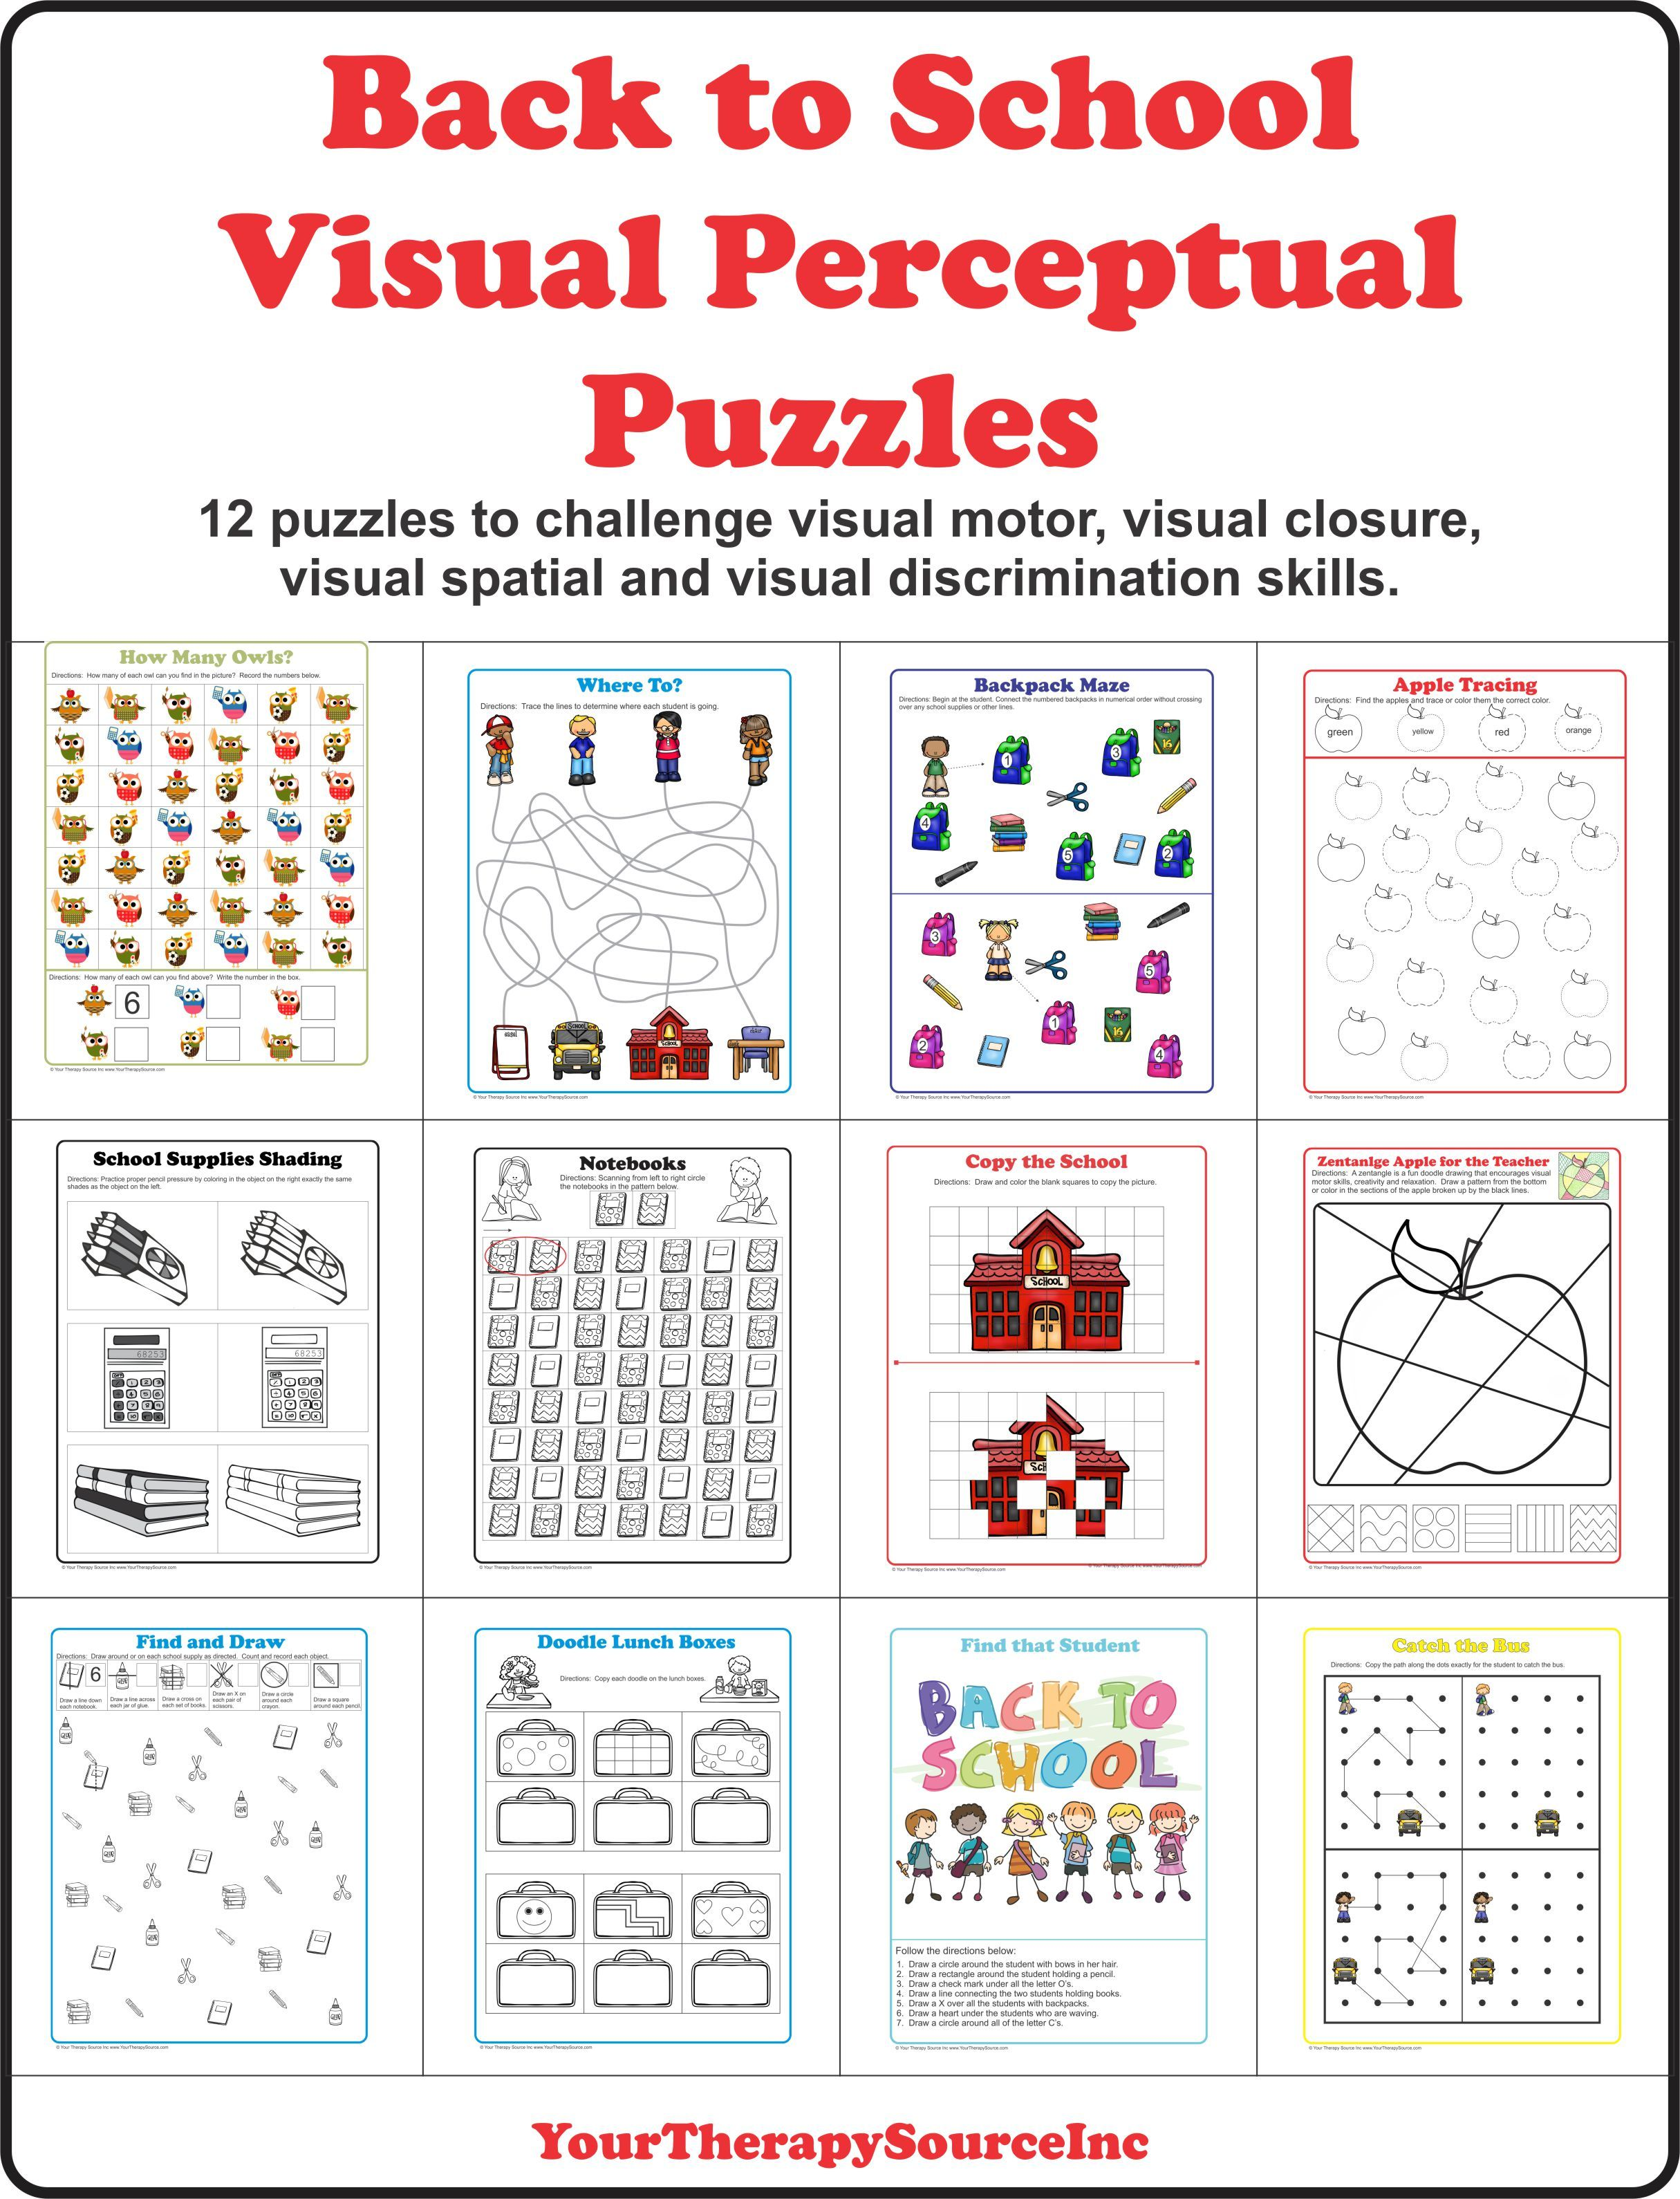 worksheet Visual Perception Worksheets 12 visual motor spatial closure and perceptual challenges with a back